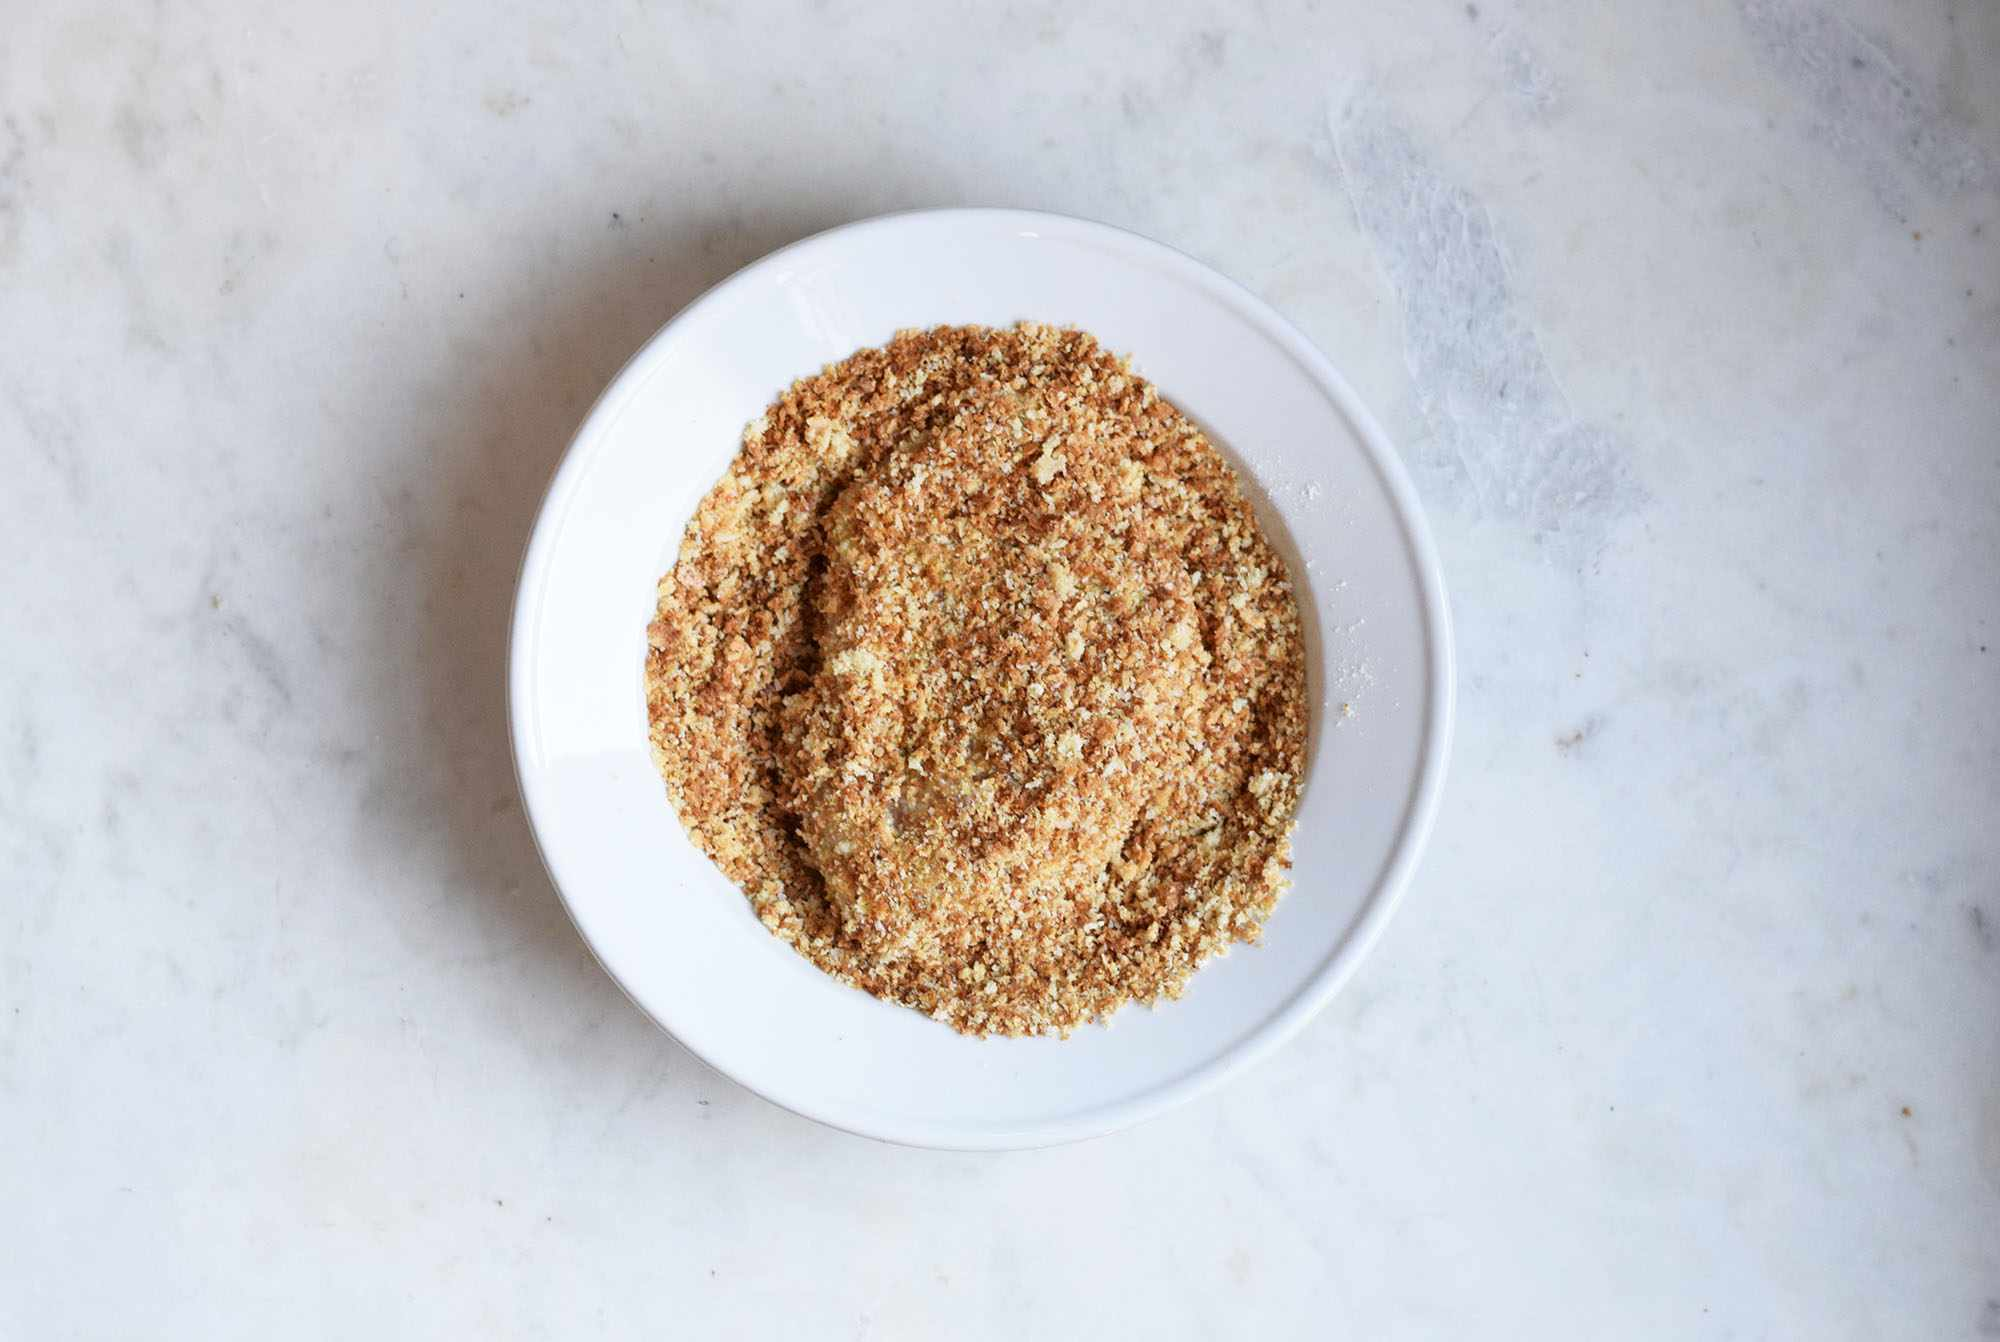 chicken breasts dipped in breadcrumbs